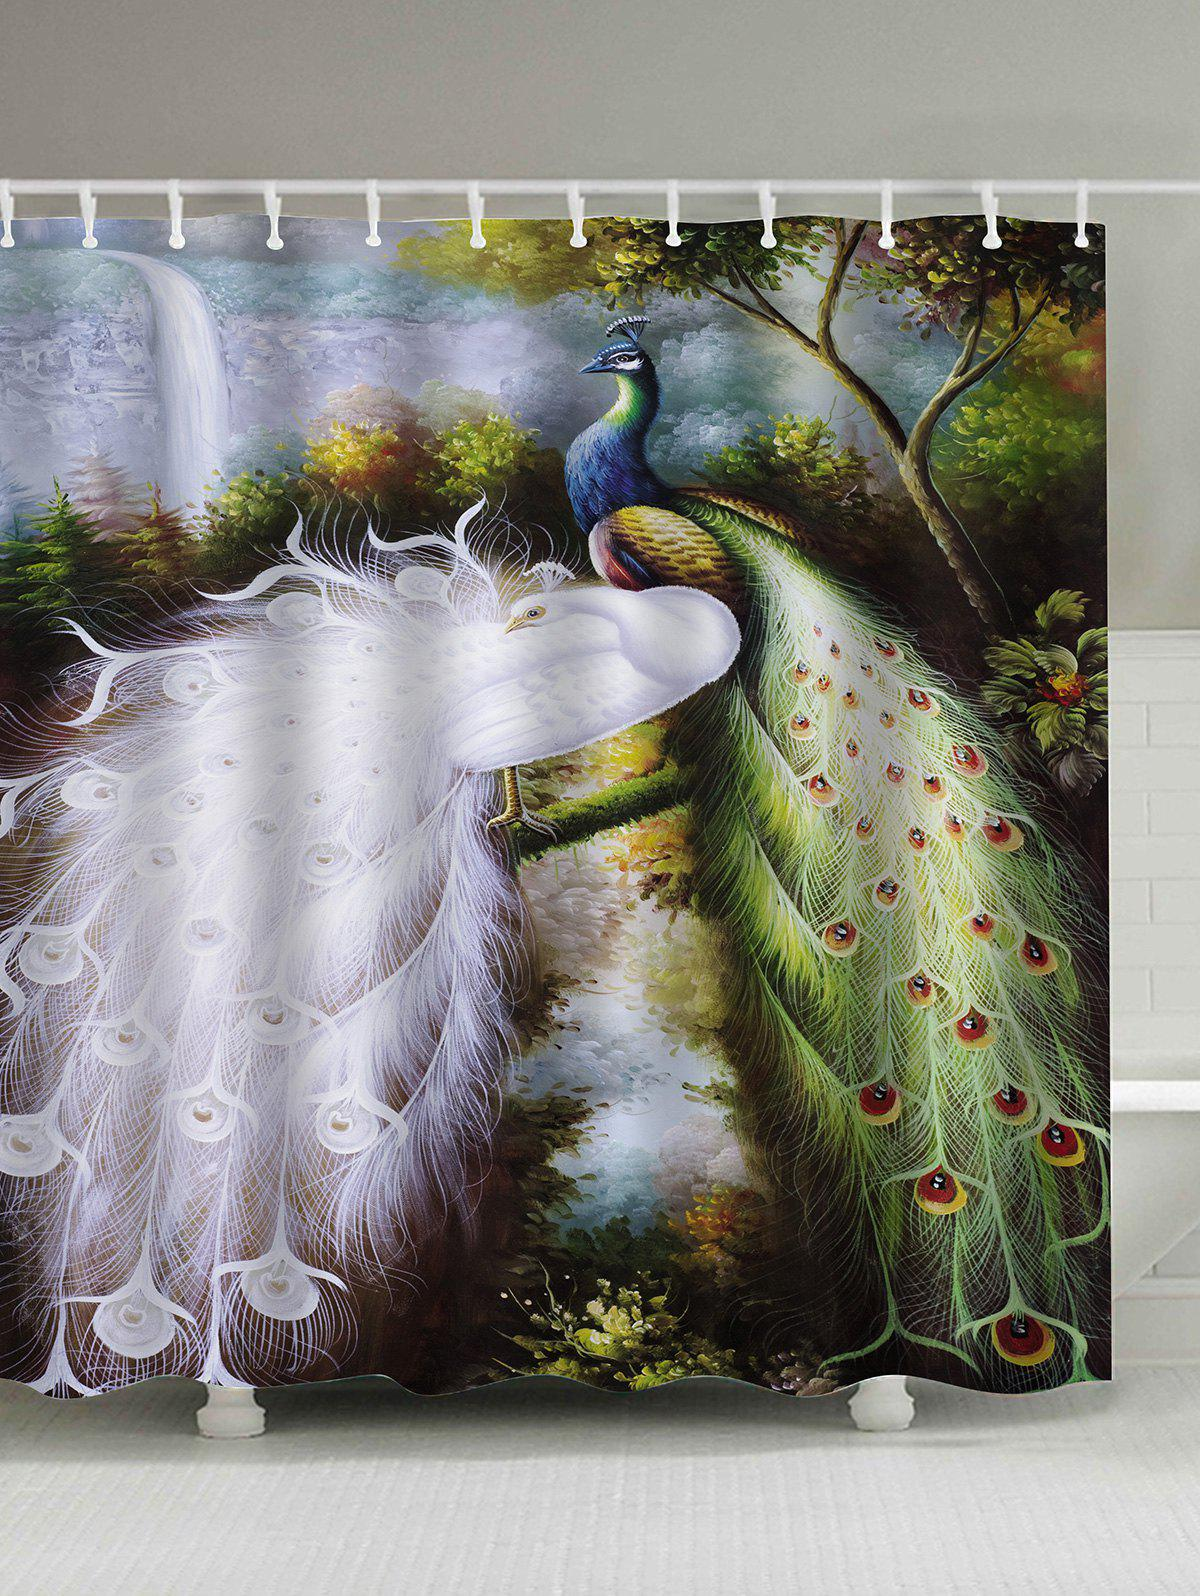 Oil Painting Peacocks Waterproof Shower Curtain - COLORMIX 180*180CM